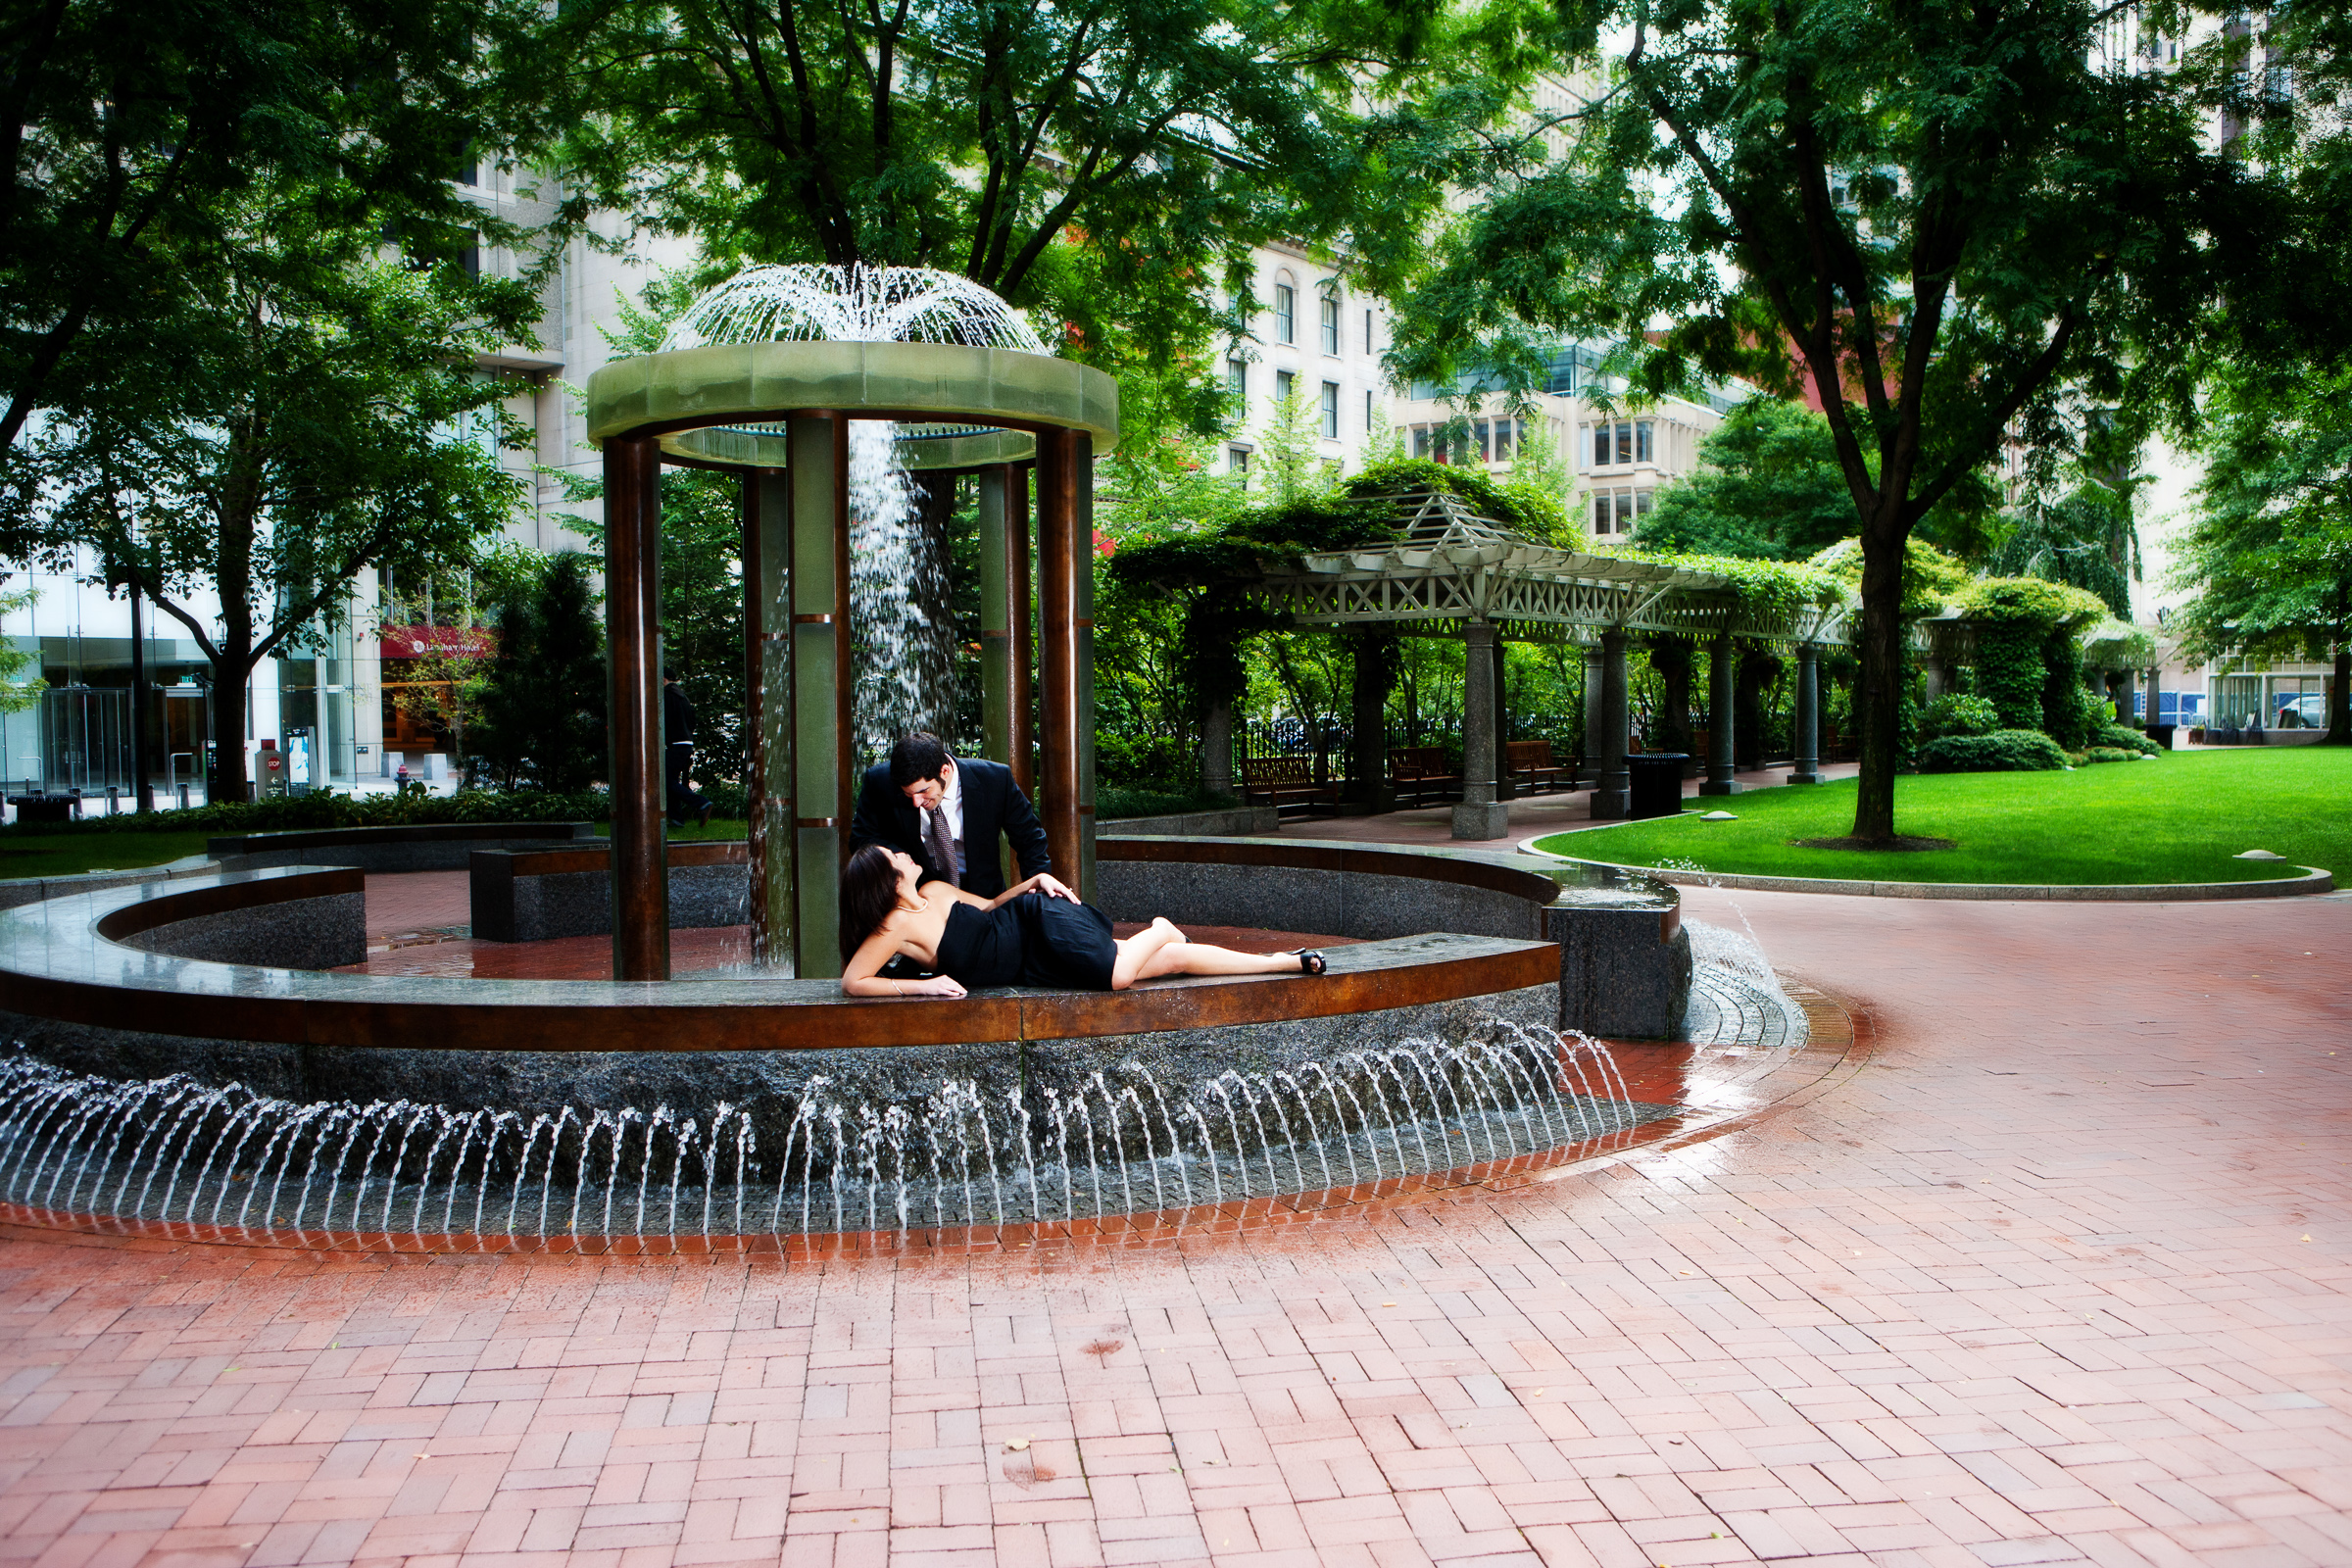 Engagement picture in post office square in boston, ma